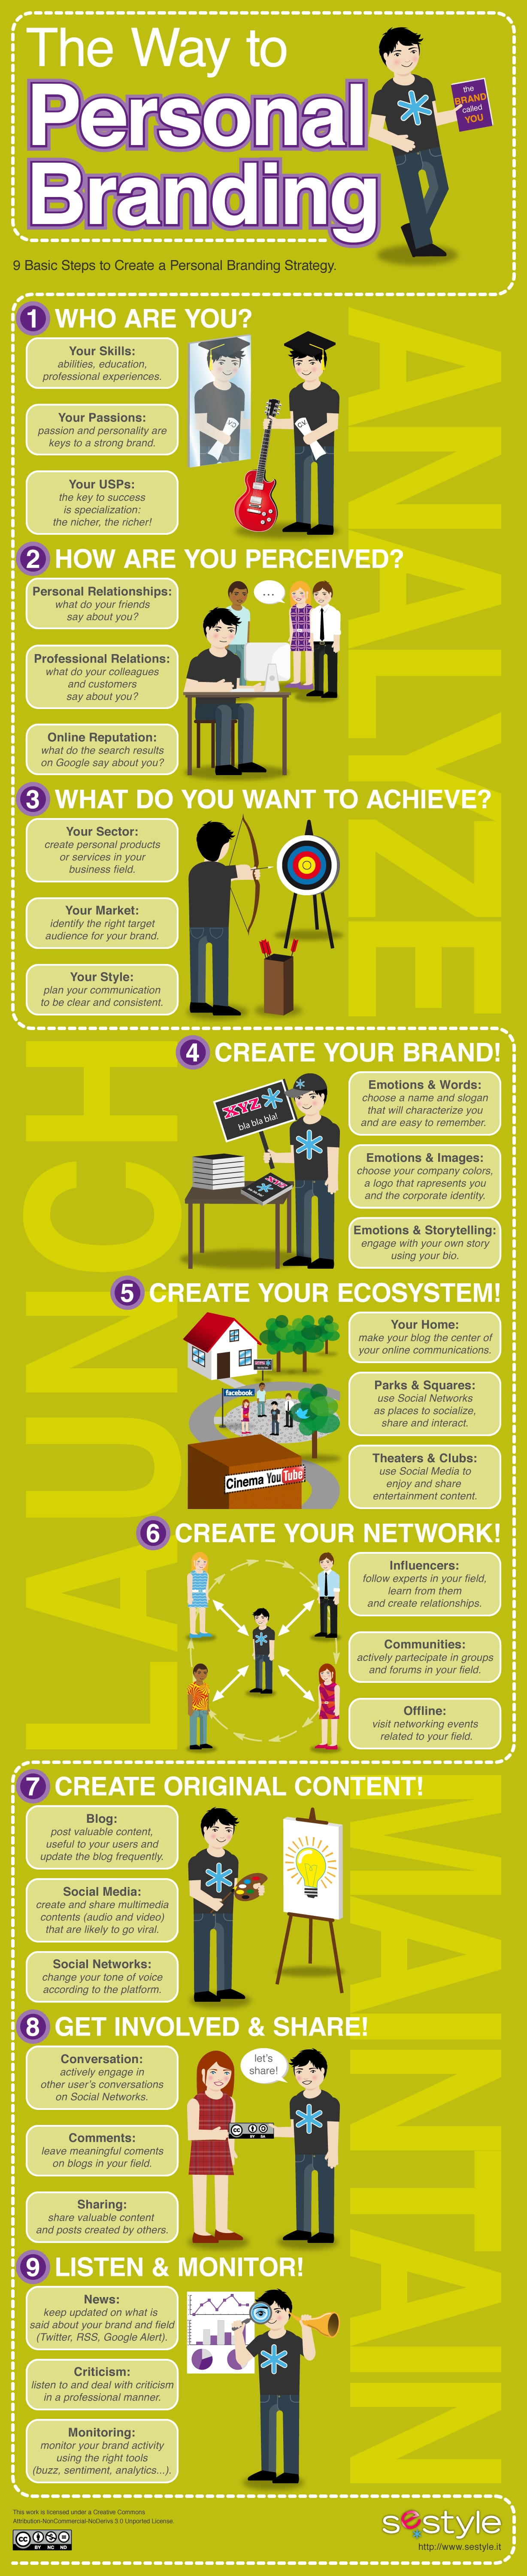 personal-branding-guide-infographic